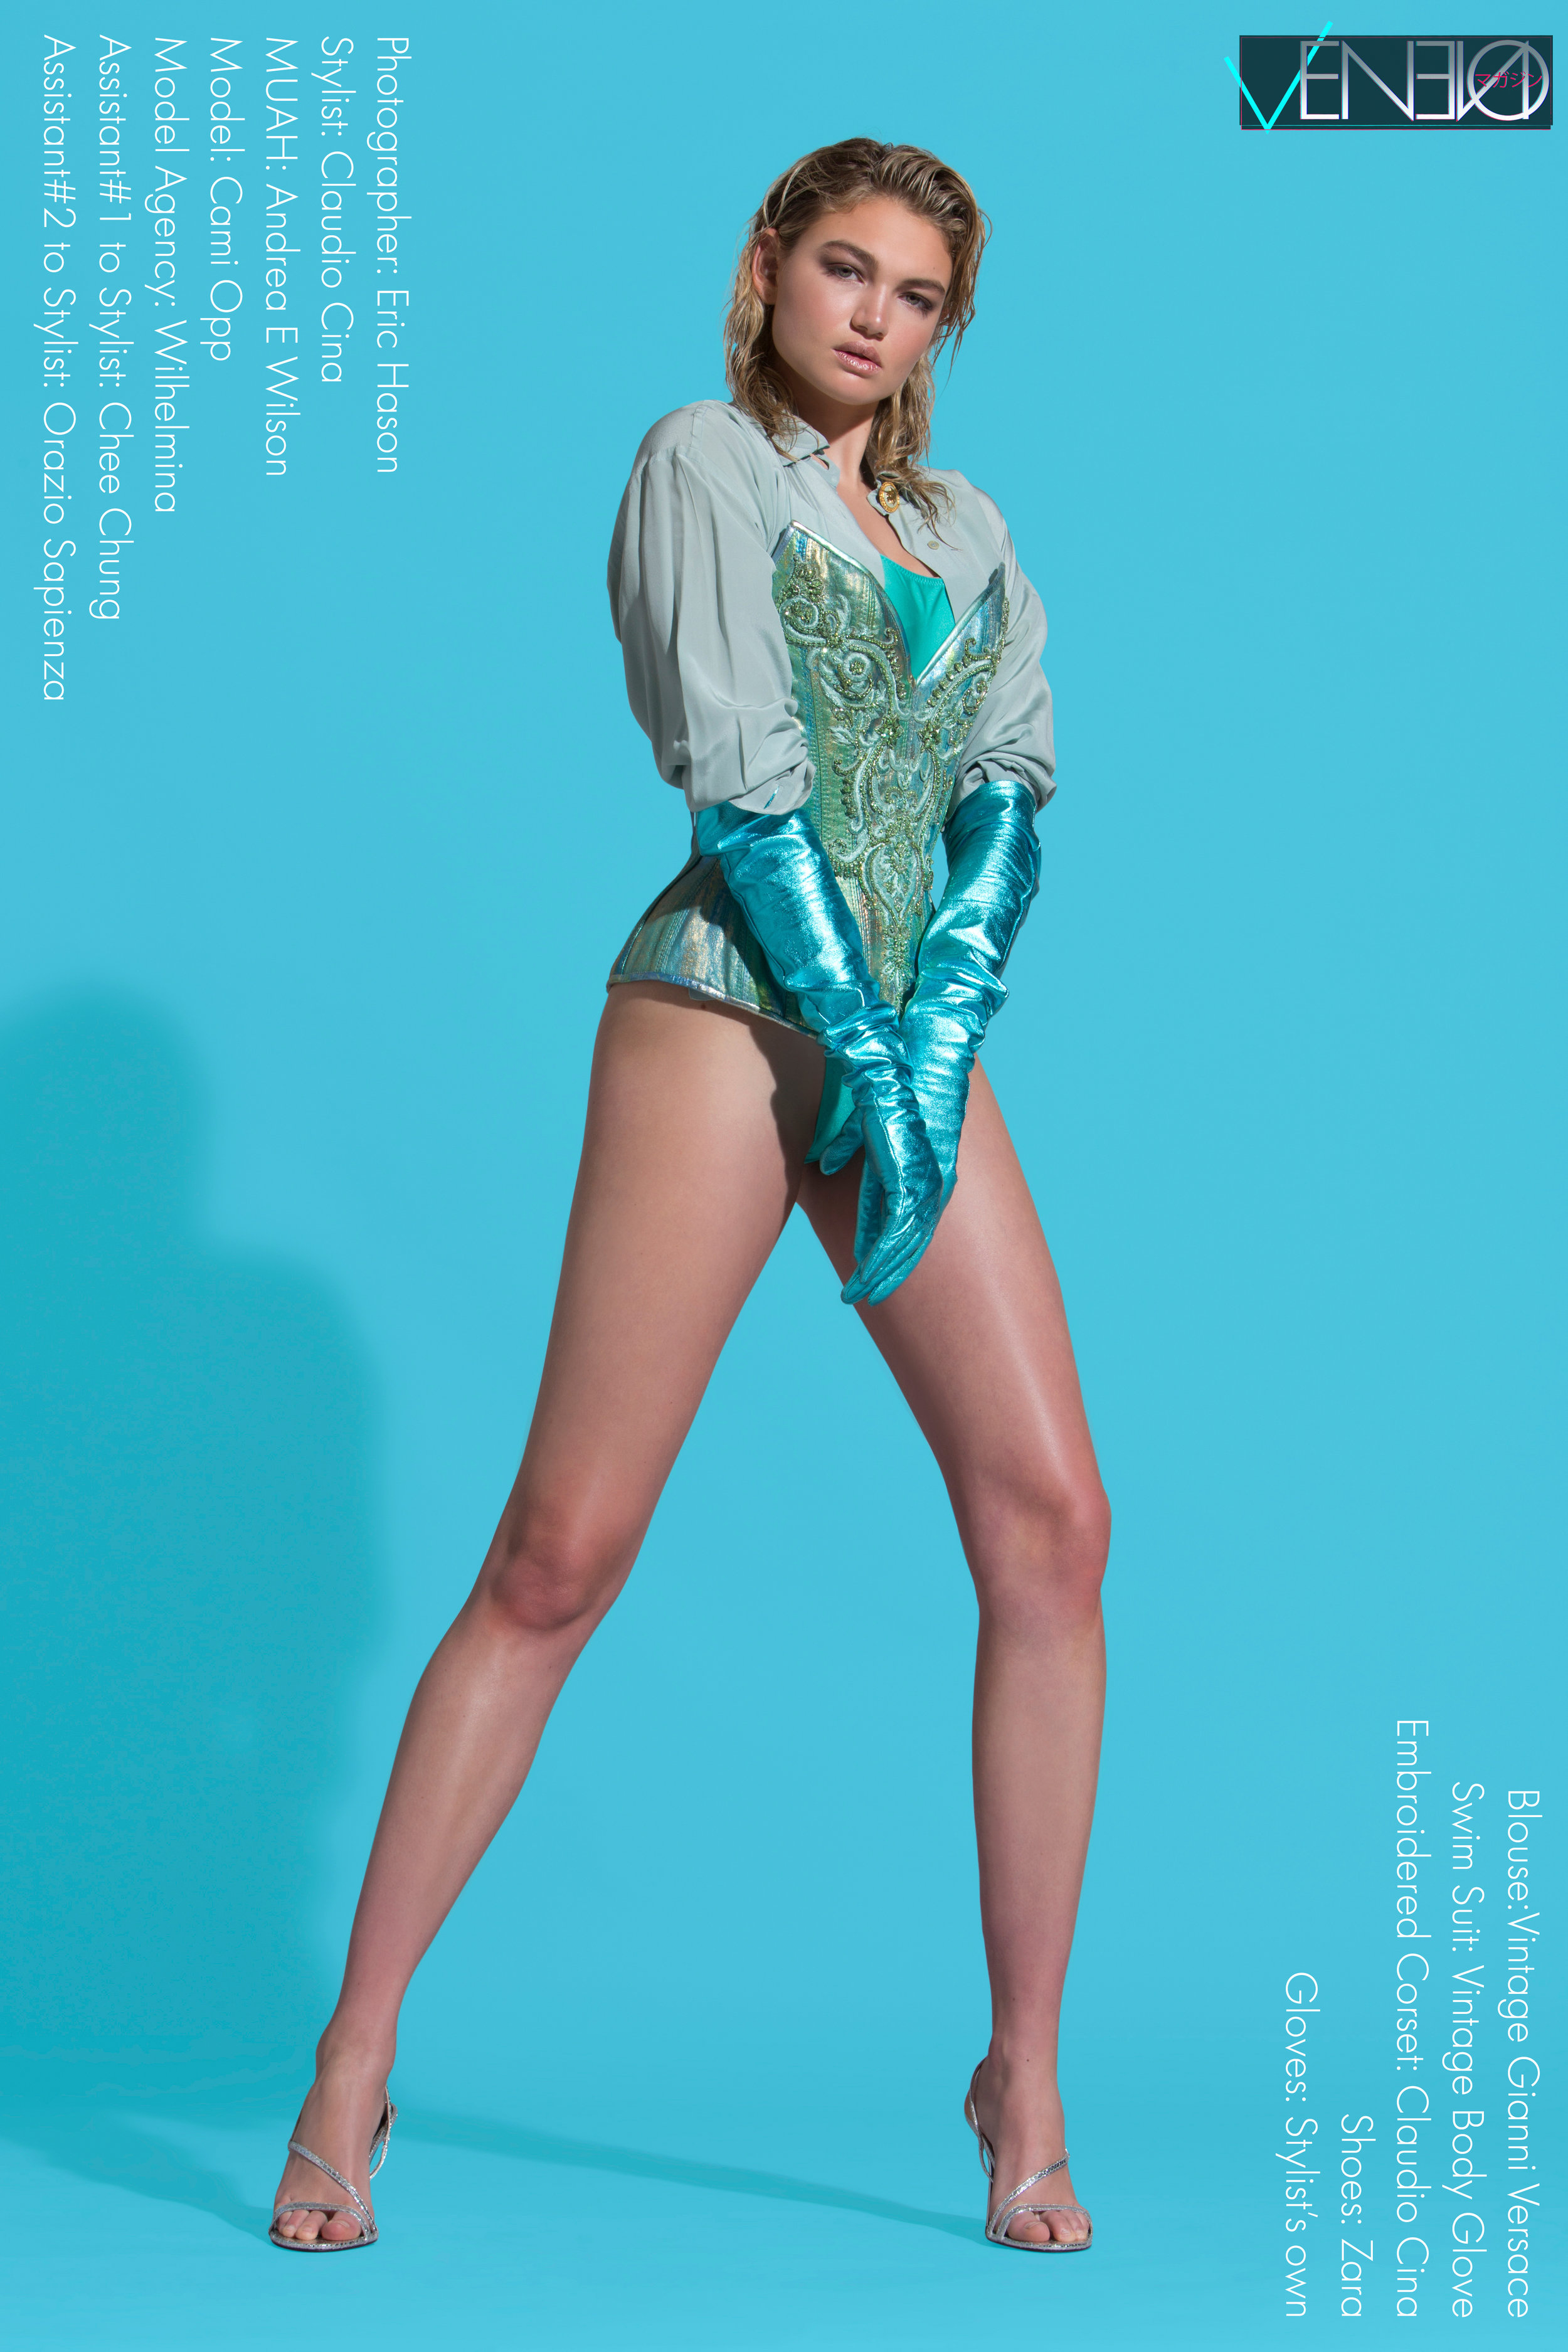 Blouse – Vintage Gianni Versace Swim Suit – Vintage Body Glove Embroidered Corset – Claudio Cina Shoes – Zara Gloves – Stylist's own